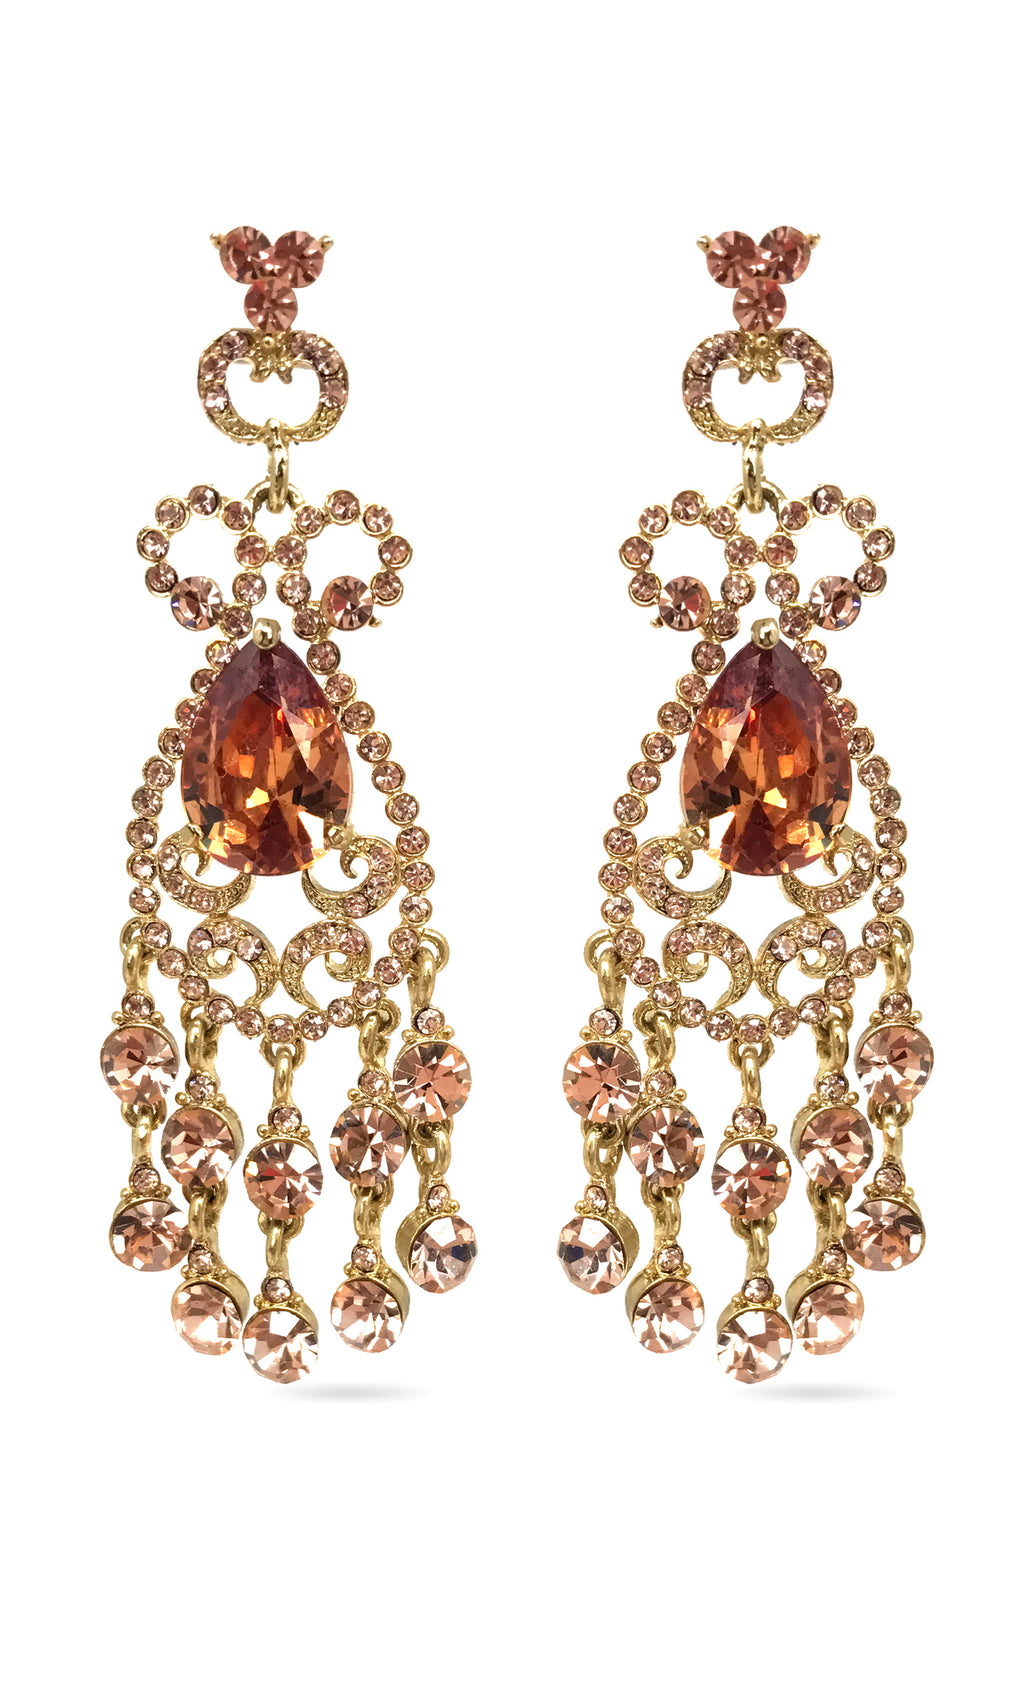 Taj Mahal Gold Plated Citrine Orange Swarovski Crystal Rhinestone Fringe Chandelier Earrings